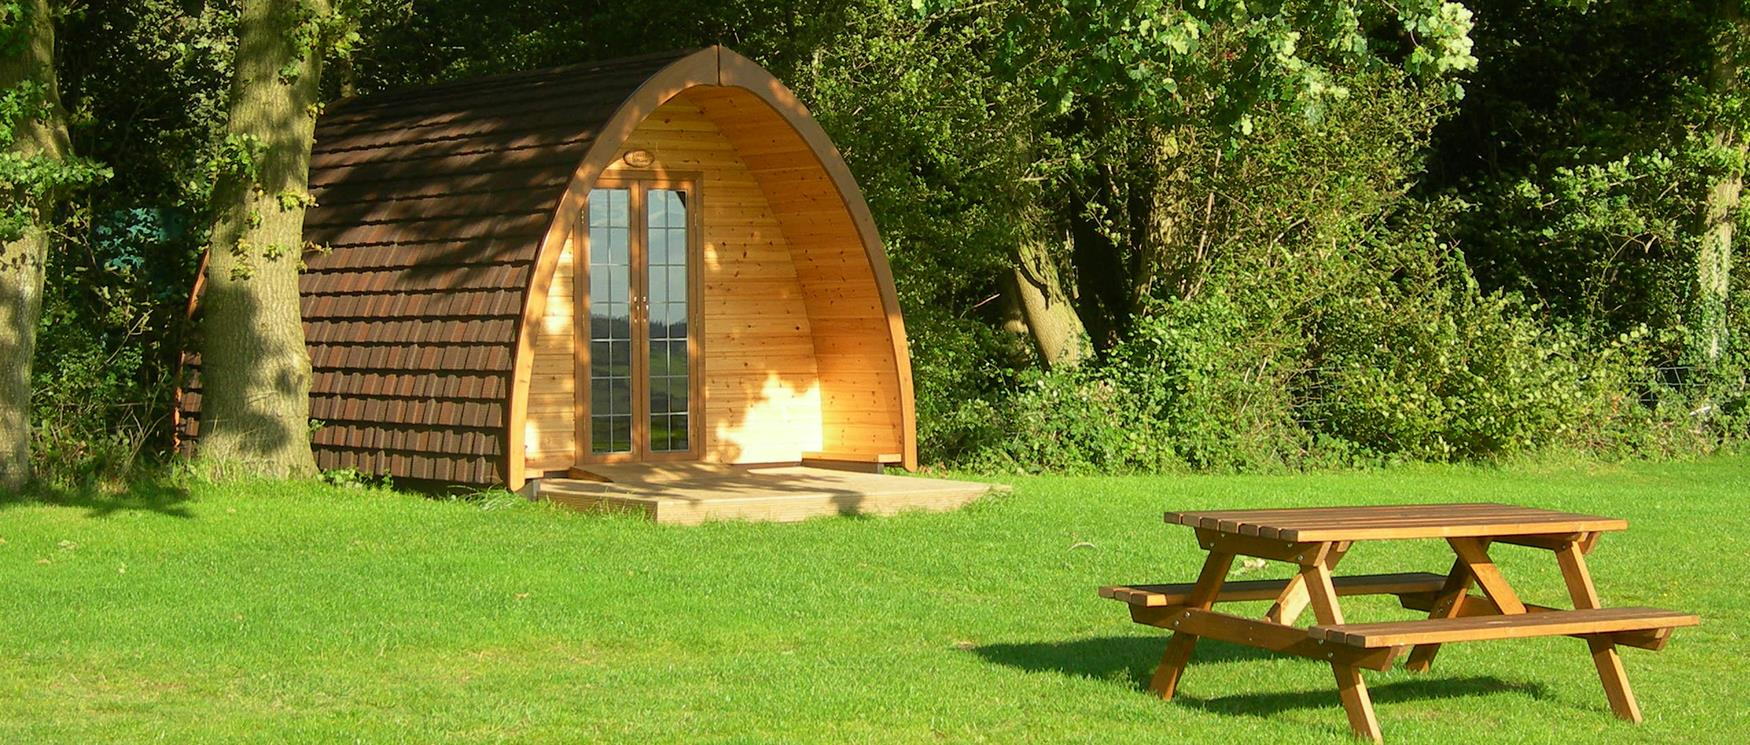 Two Hoots Glamping Pods in Hampshire